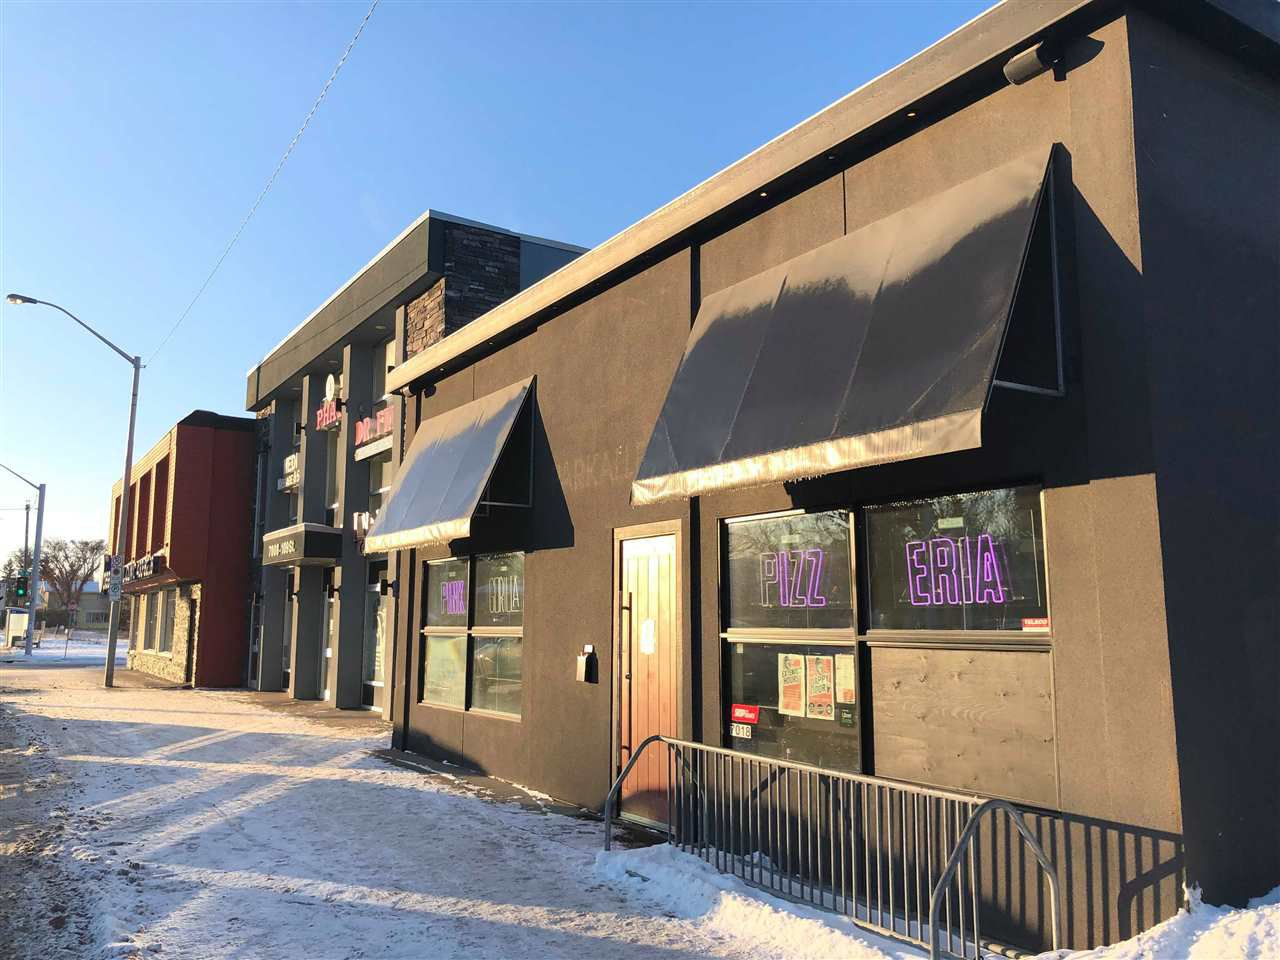 Main Photo: 7016 109 Street in Edmonton: Zone 15 Retail for sale or lease : MLS®# E4182889